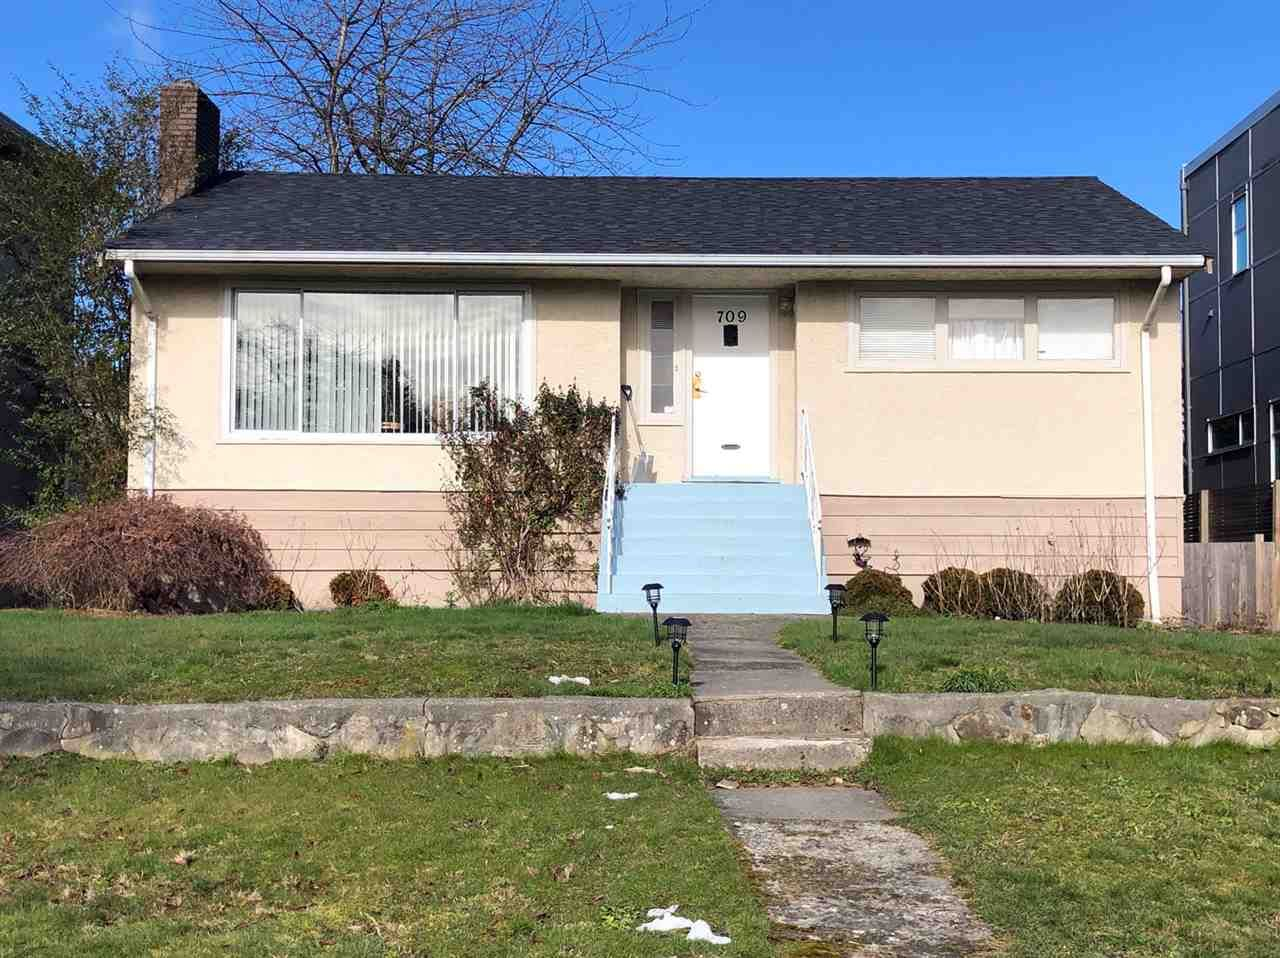 Main Photo: 709 W 64TH Avenue in Vancouver: Marpole House for sale (Vancouver West)  : MLS®# R2540415